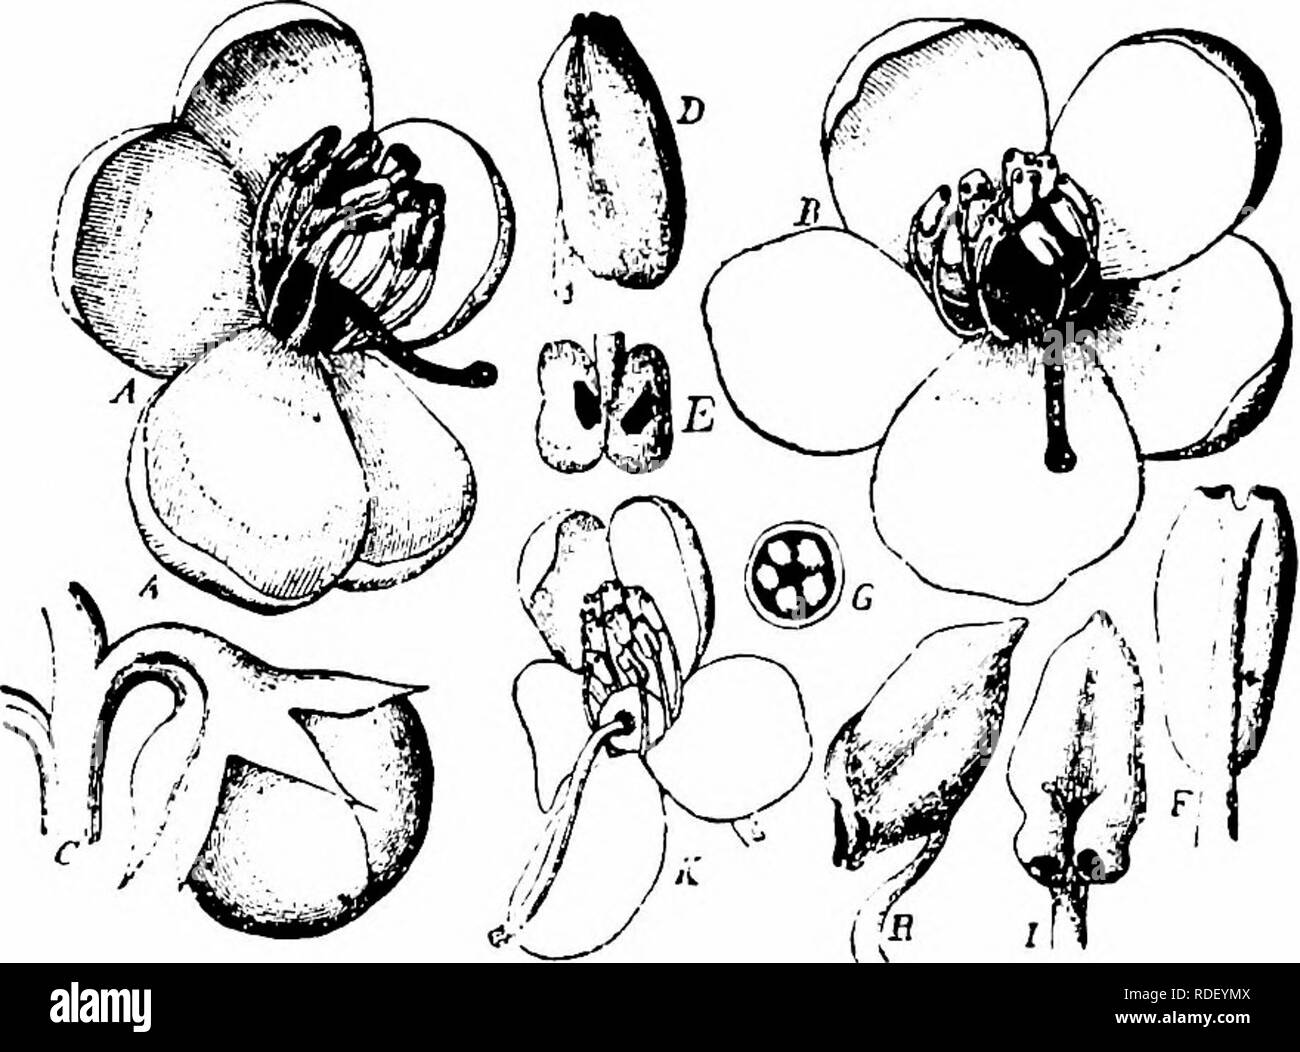 . Handbook of flower pollination : based upon Hermann MuÌller's work 'The fertilisation of flowers by insects' . Fertilization of plants. ERICACEAE 53 stigma, upon which are damp glistening spots (considered as nectar by Ricca), that visitors lick, at the same time depositing any pollen adhering to their proboscis. Finding no nectar they climb up the style, attracted by the orange-yellow horns of the anthers, and busy themselves with the pollen, so that the proboscis is again dusted. Crossing is therefore easily effected by insects, but Hermann Miiller says that the projecting position of the  - Stock Image